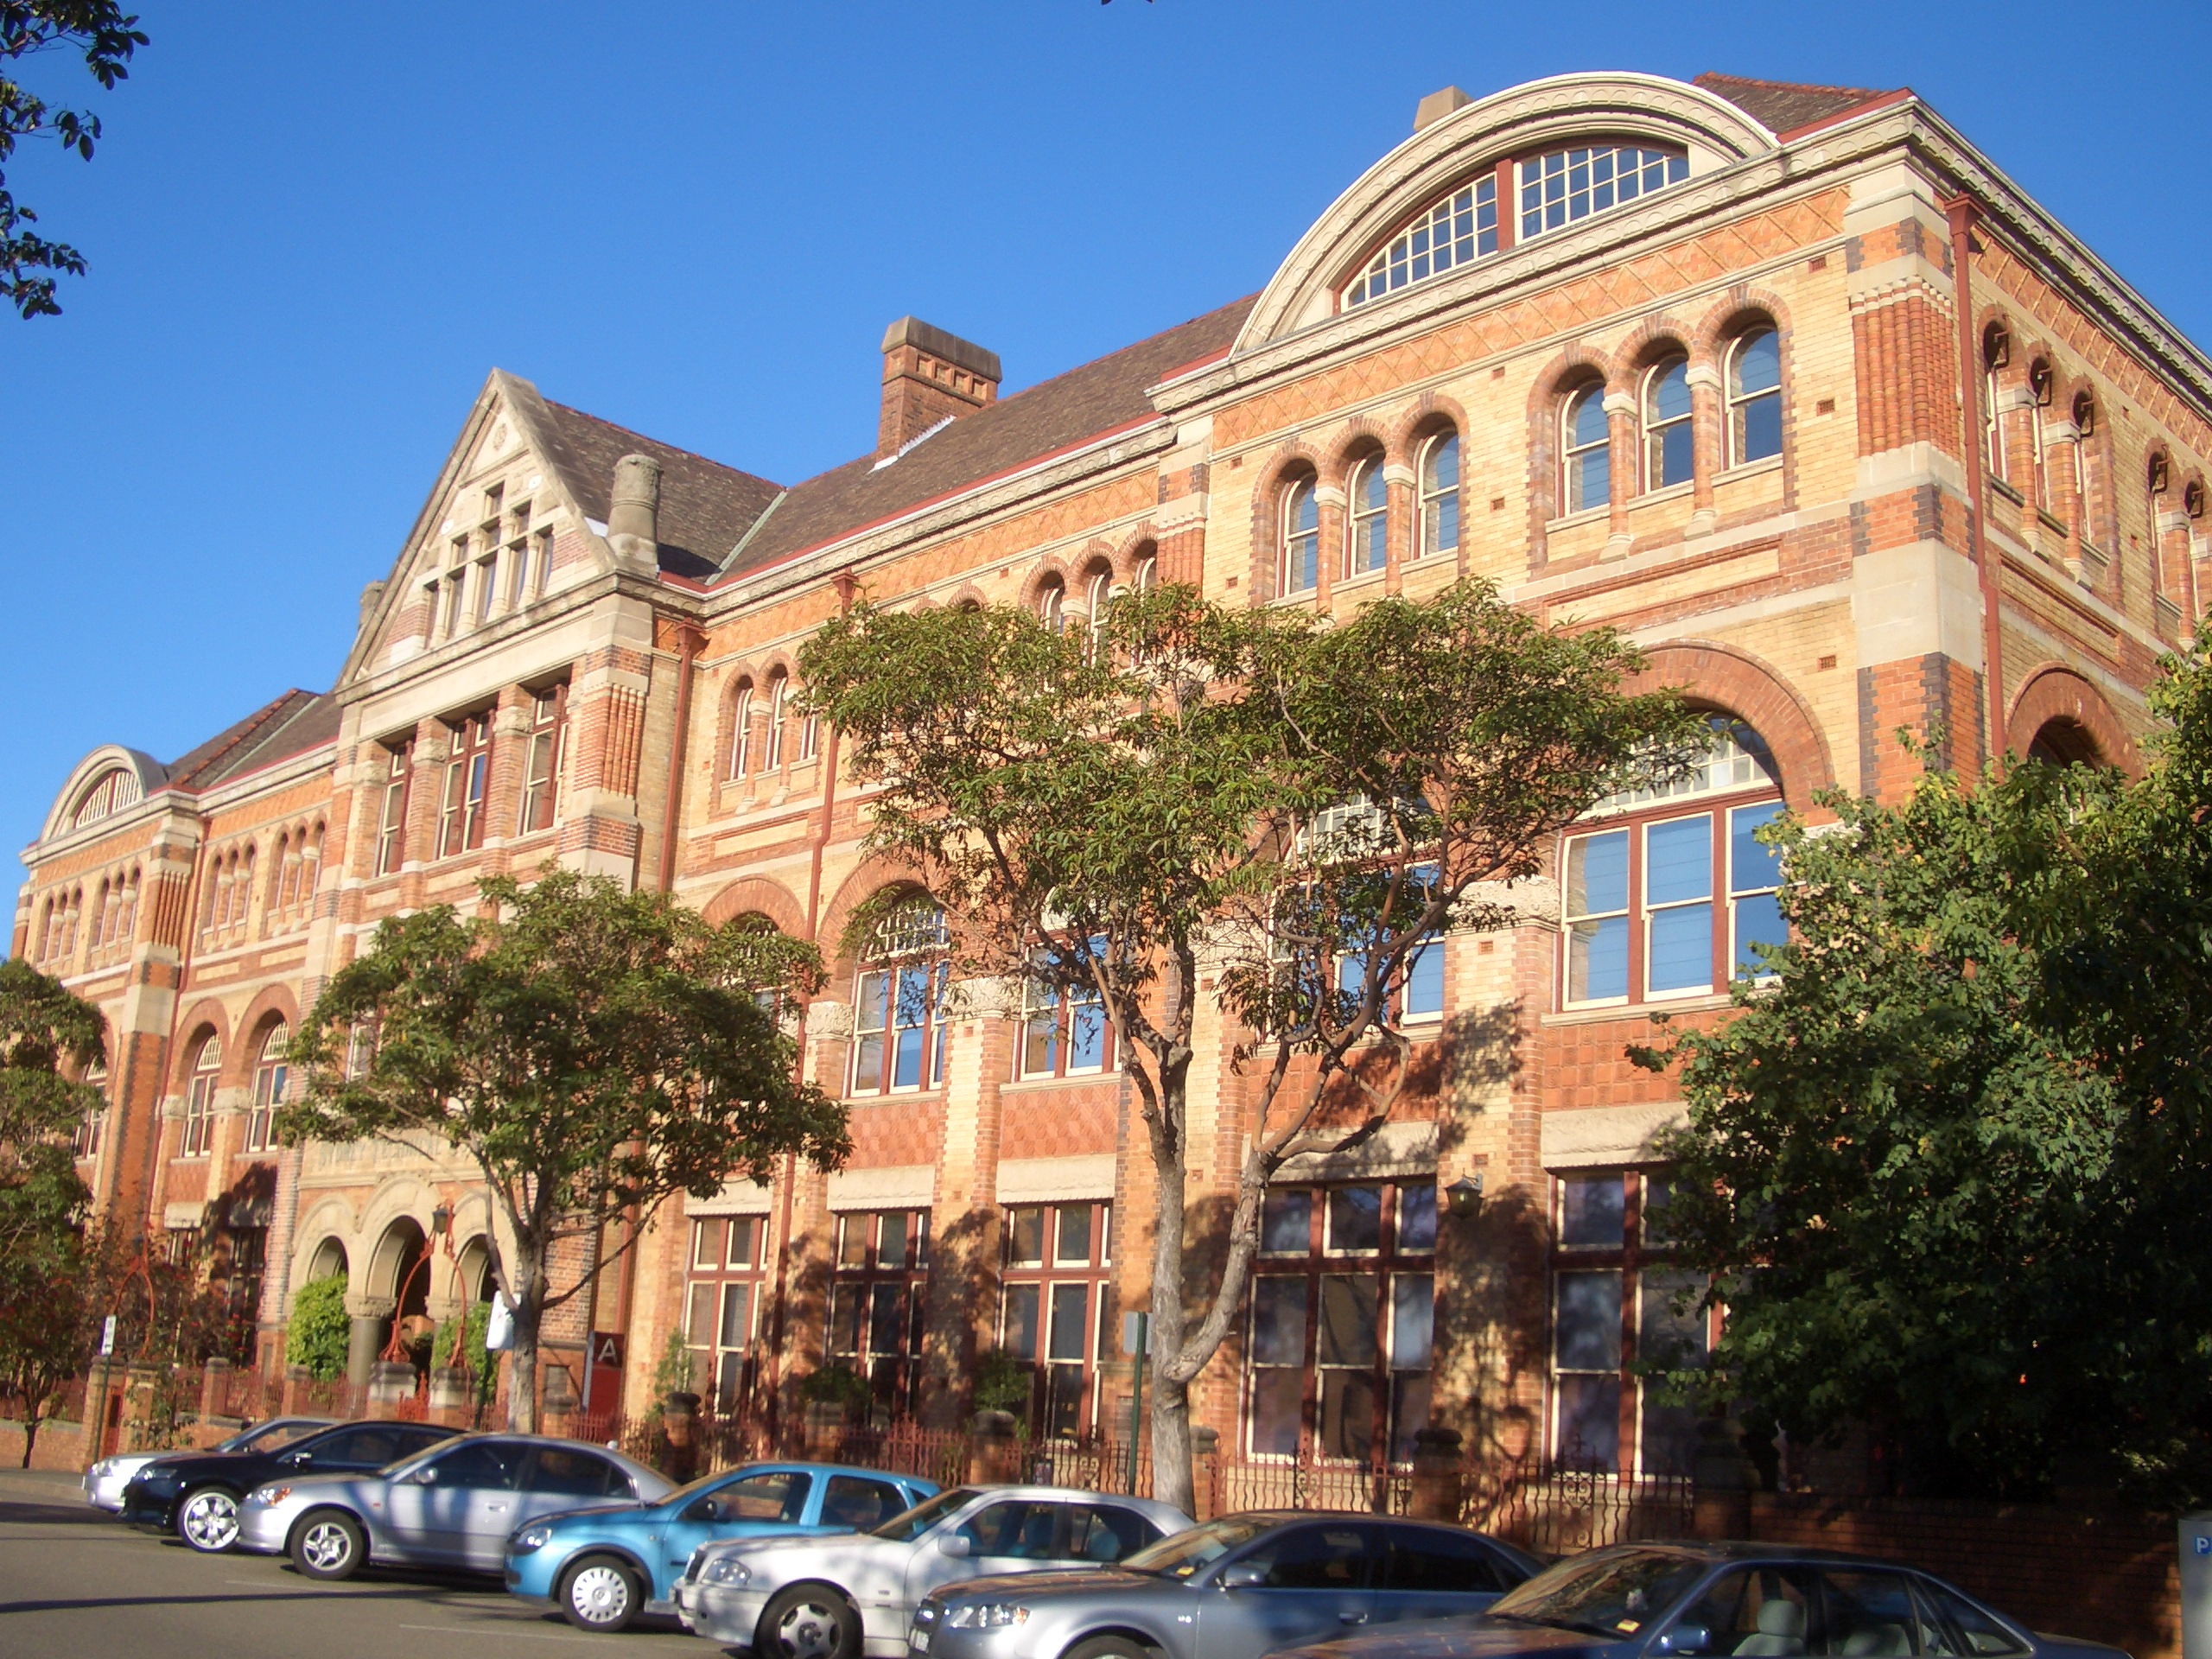 Automotive Engineering design colleges sydney